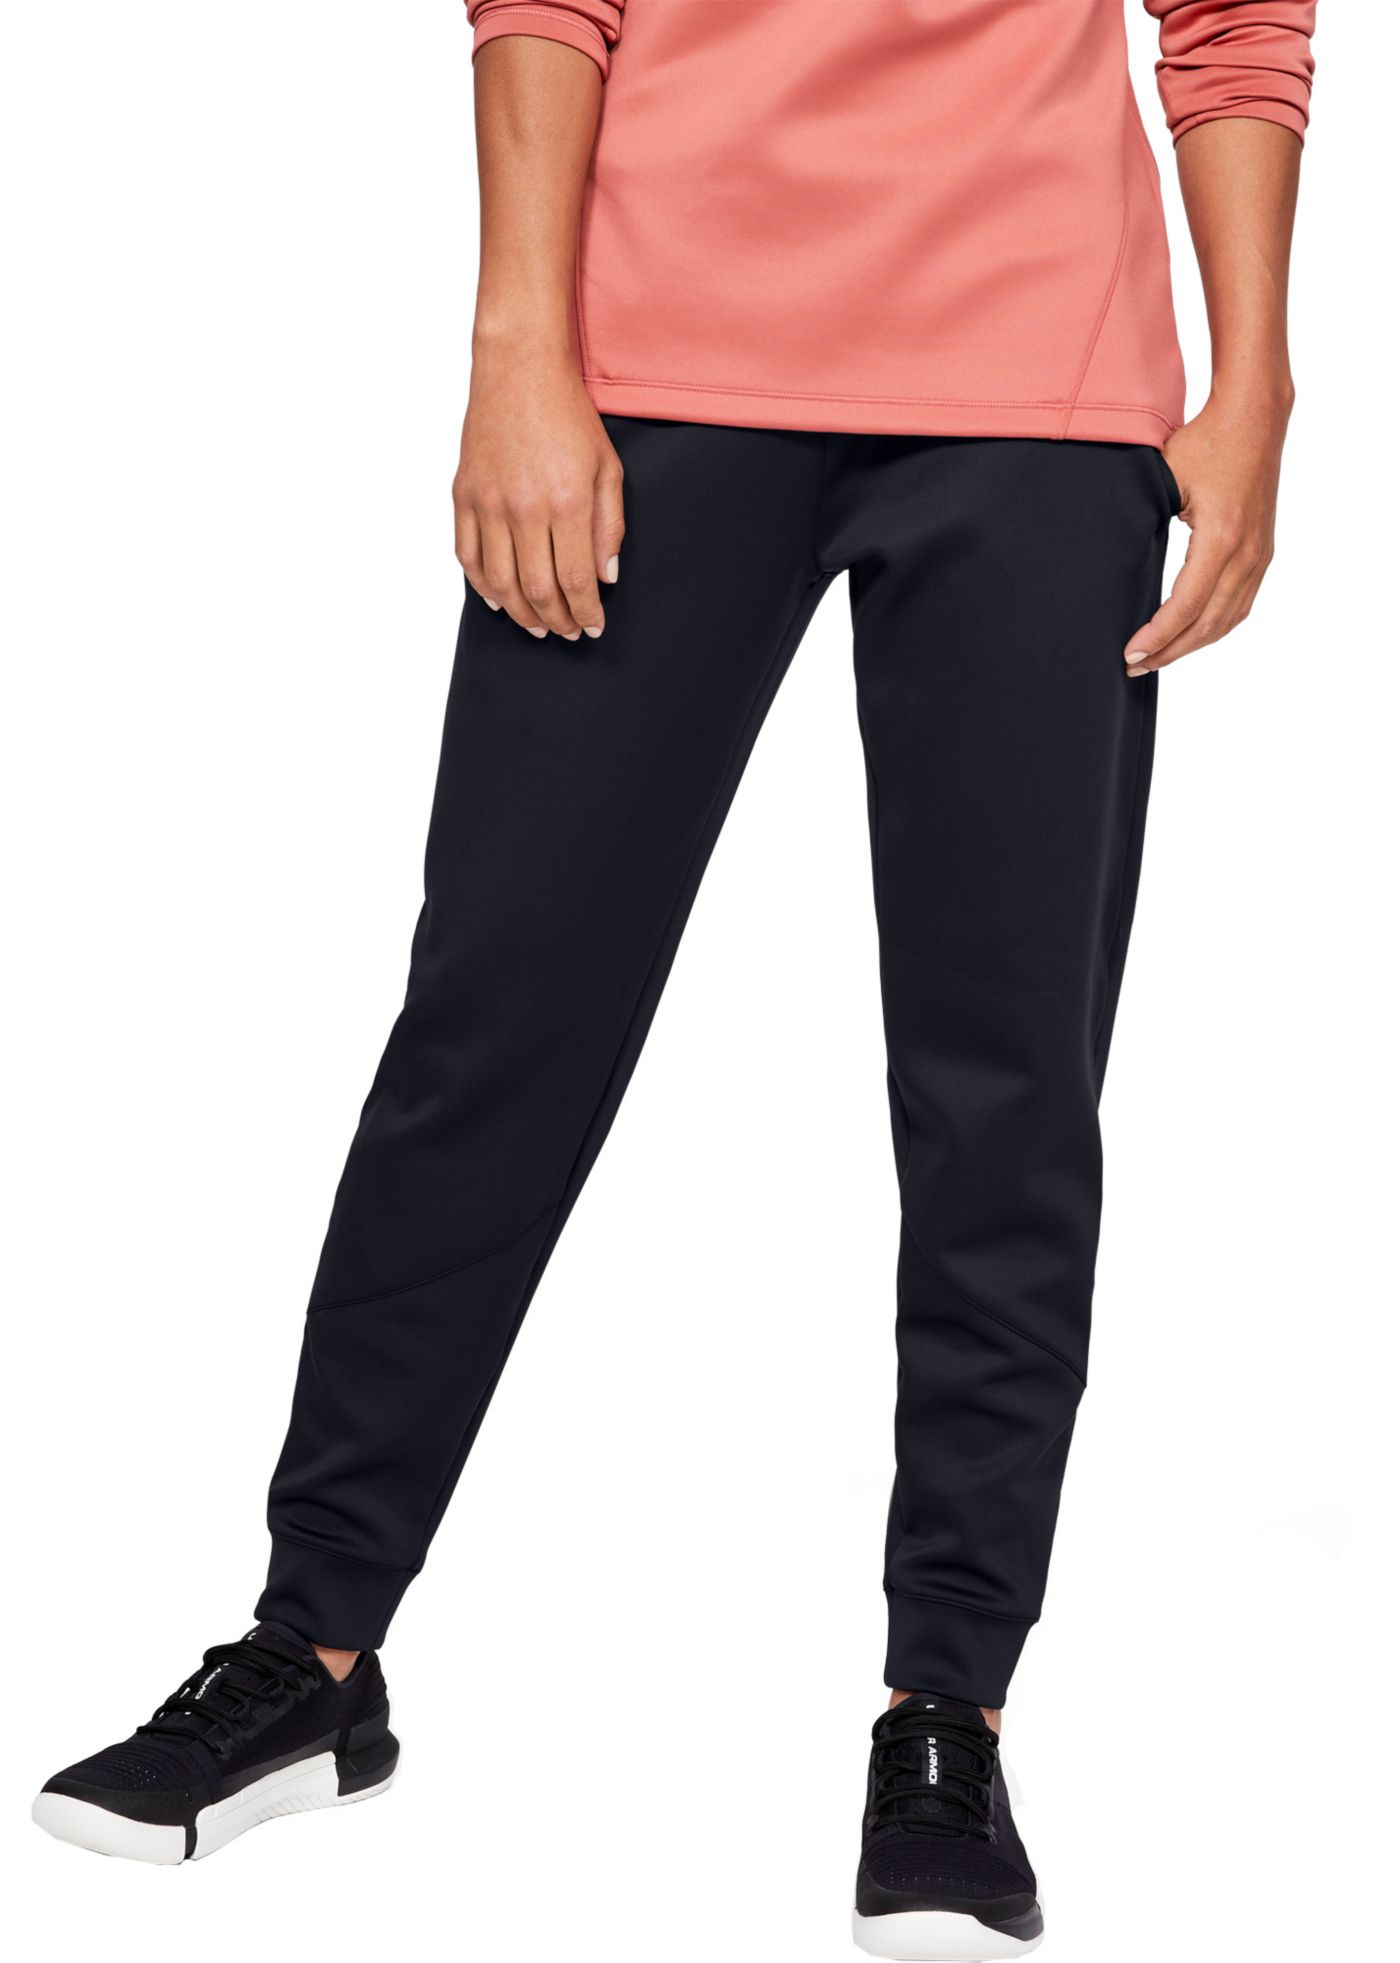 Under Armour Women's ColdGear Armour Pants